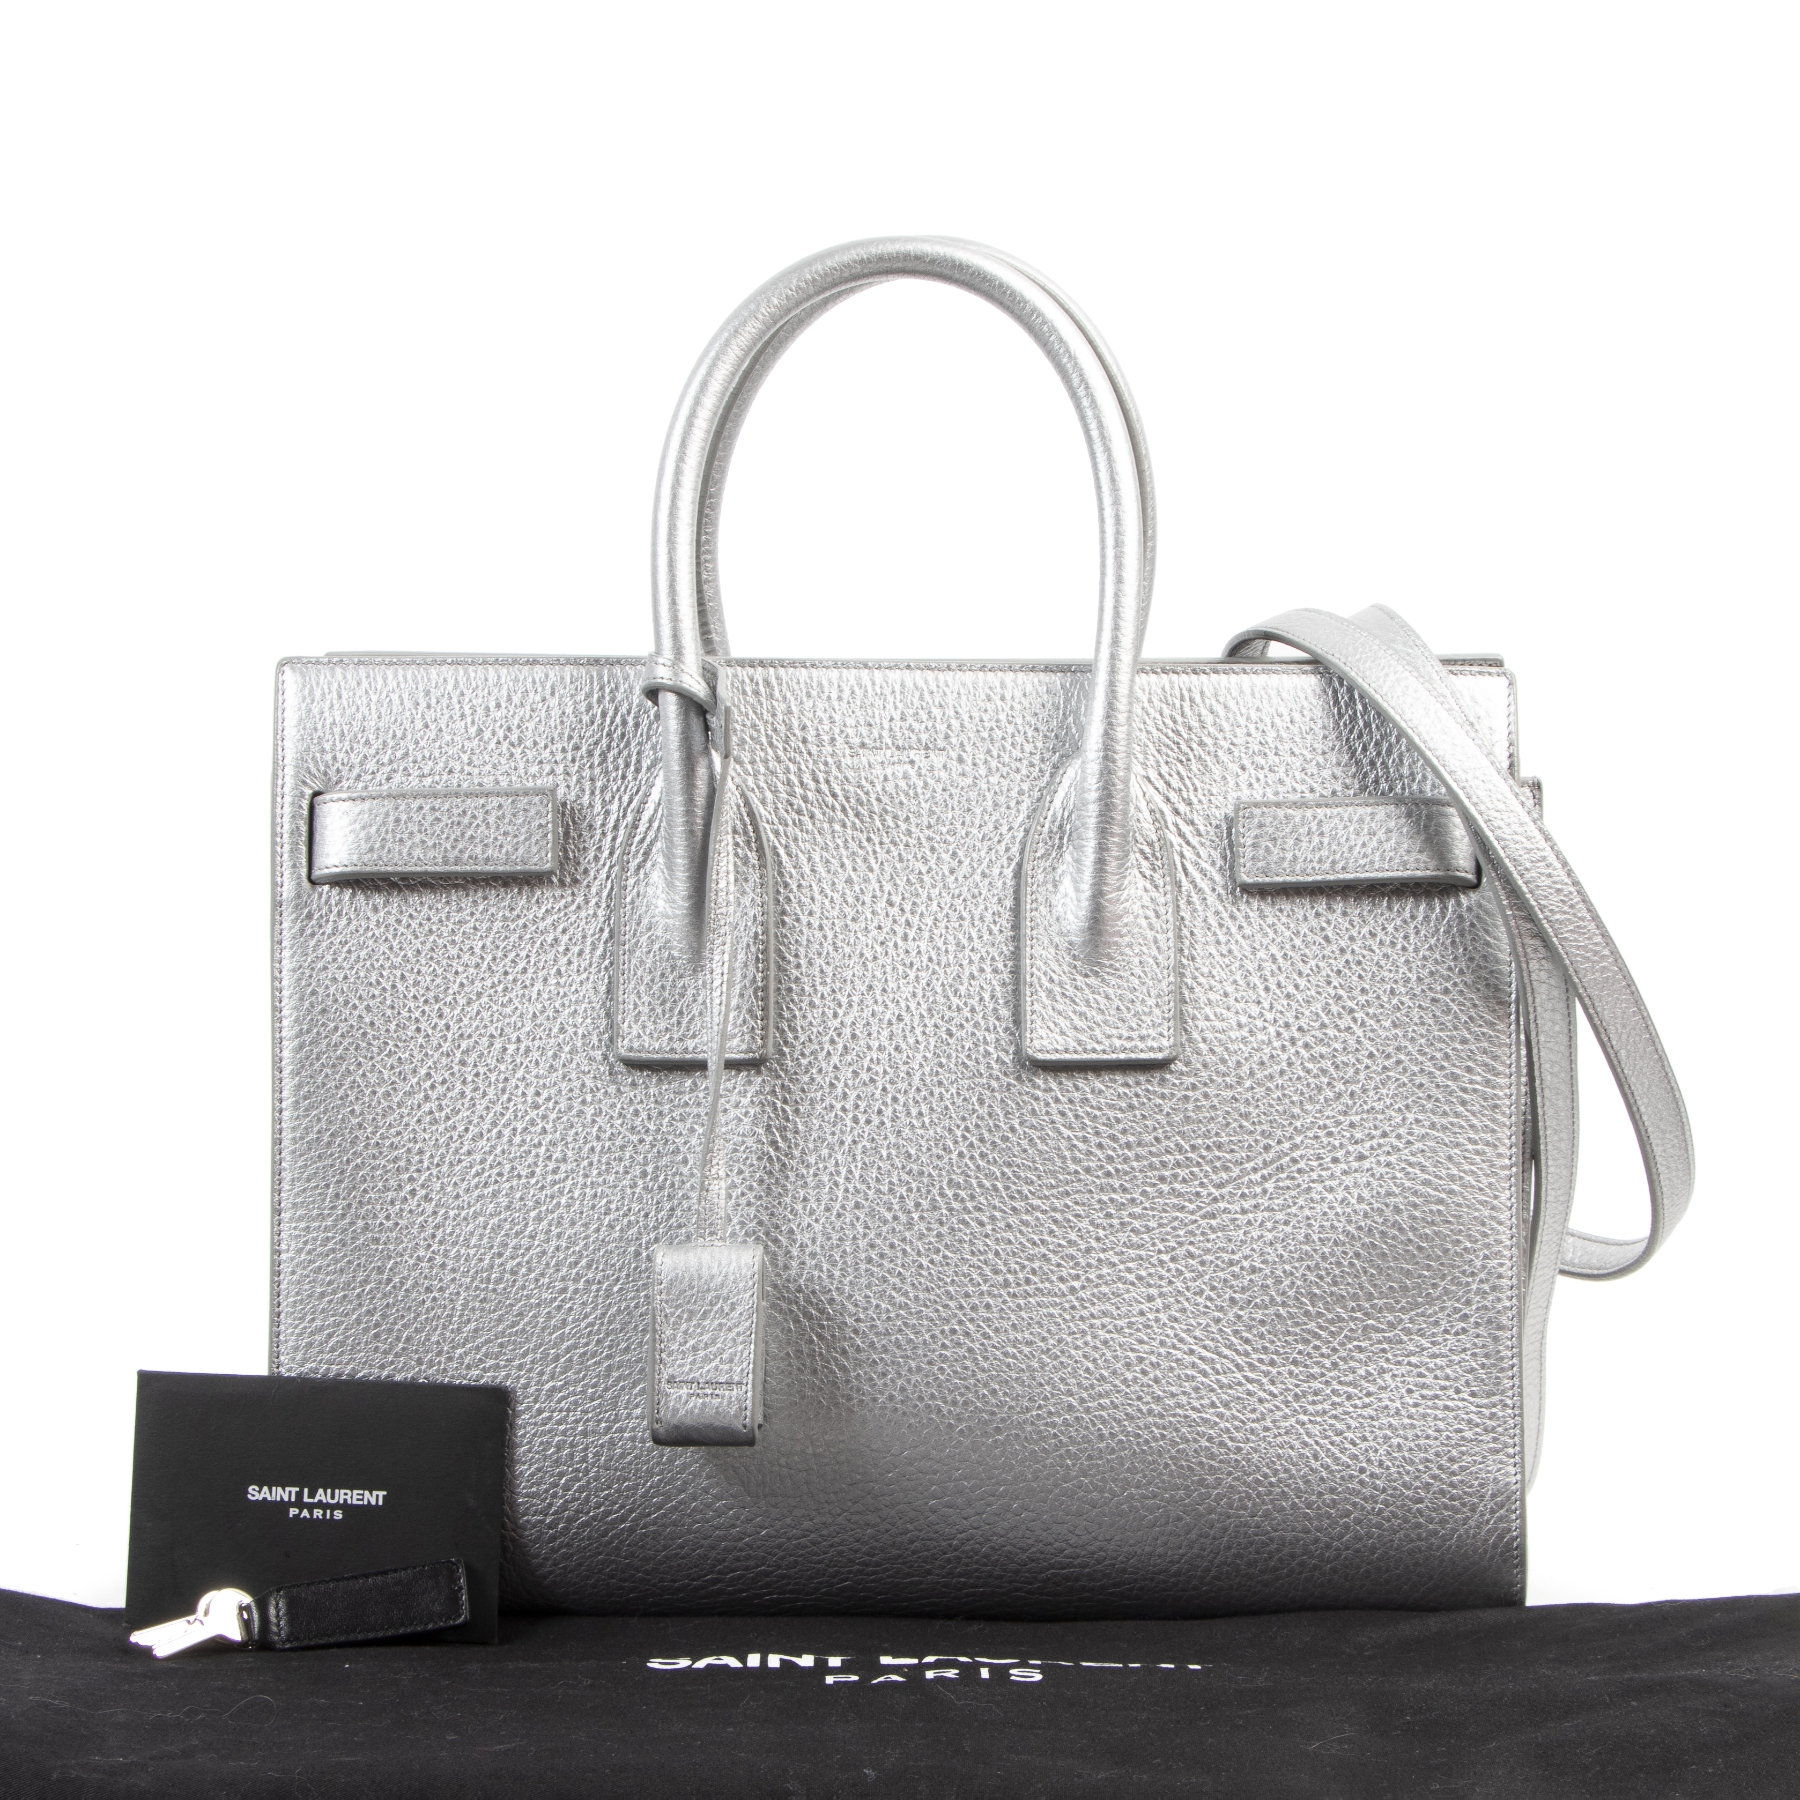 Authentic secondhand Saint Laurent Small Silver Sac de Jour Top Handle designer bags fashion luxury vintage webshop safe secure online shopping